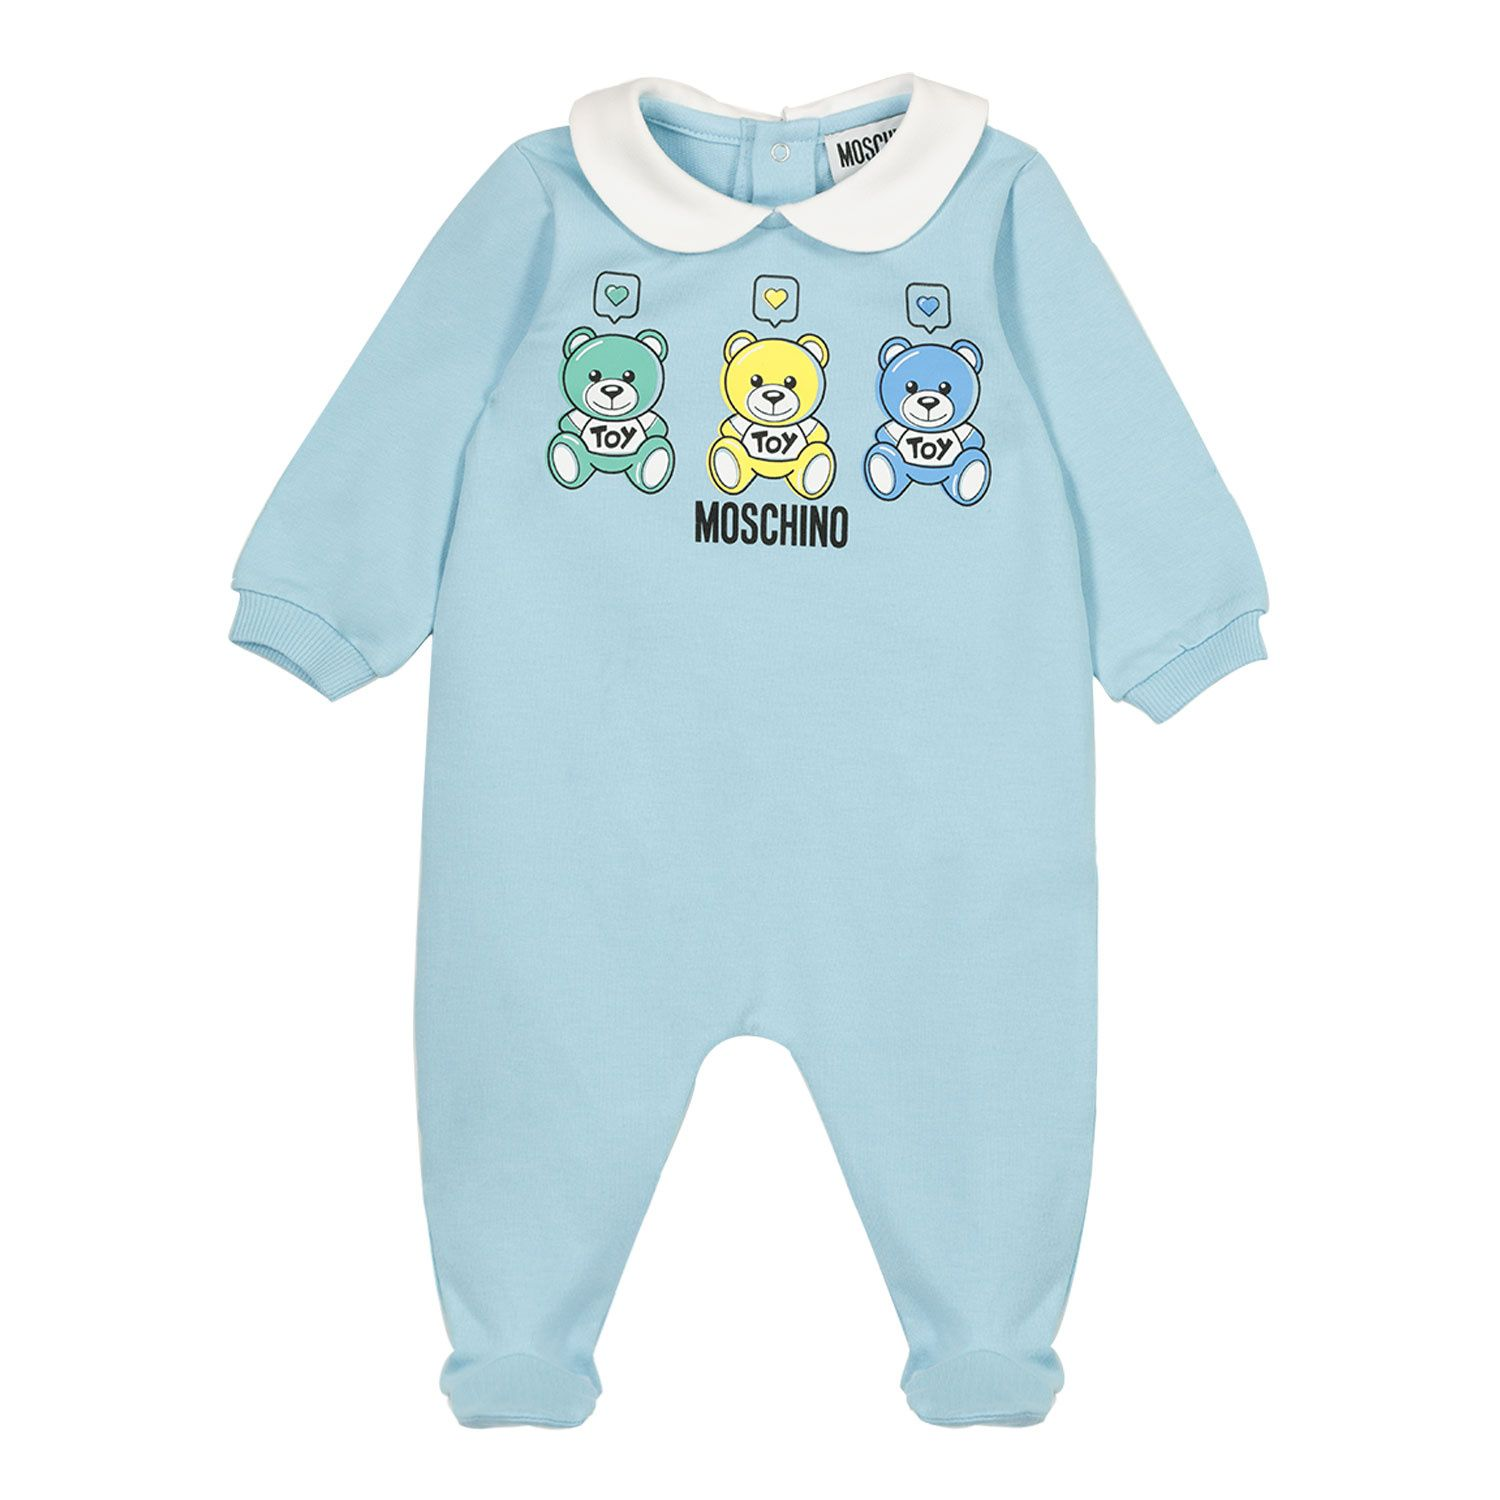 Picture of Moschino MNT01O baby playsuit light blue